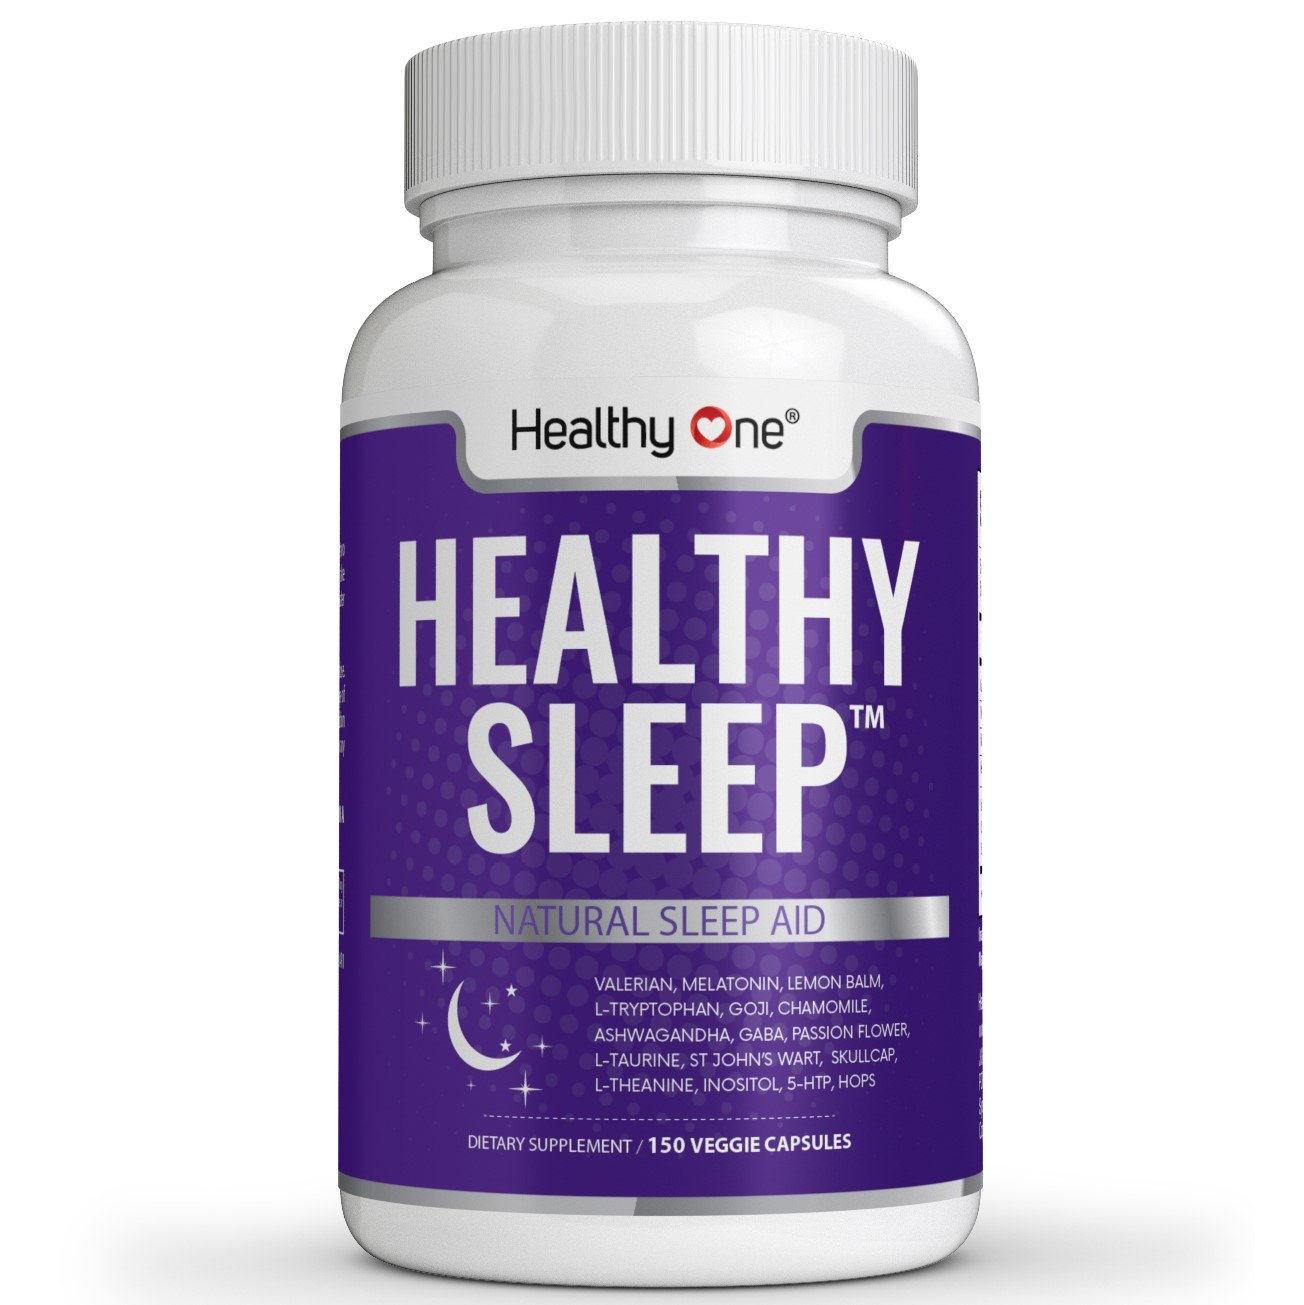 ... Get Restful Sleep, Wake Up Energized | 60 Vegan Capsules | Herbal Supplement with Melatonin, Valerian, Chamomile: Health & Personal Care